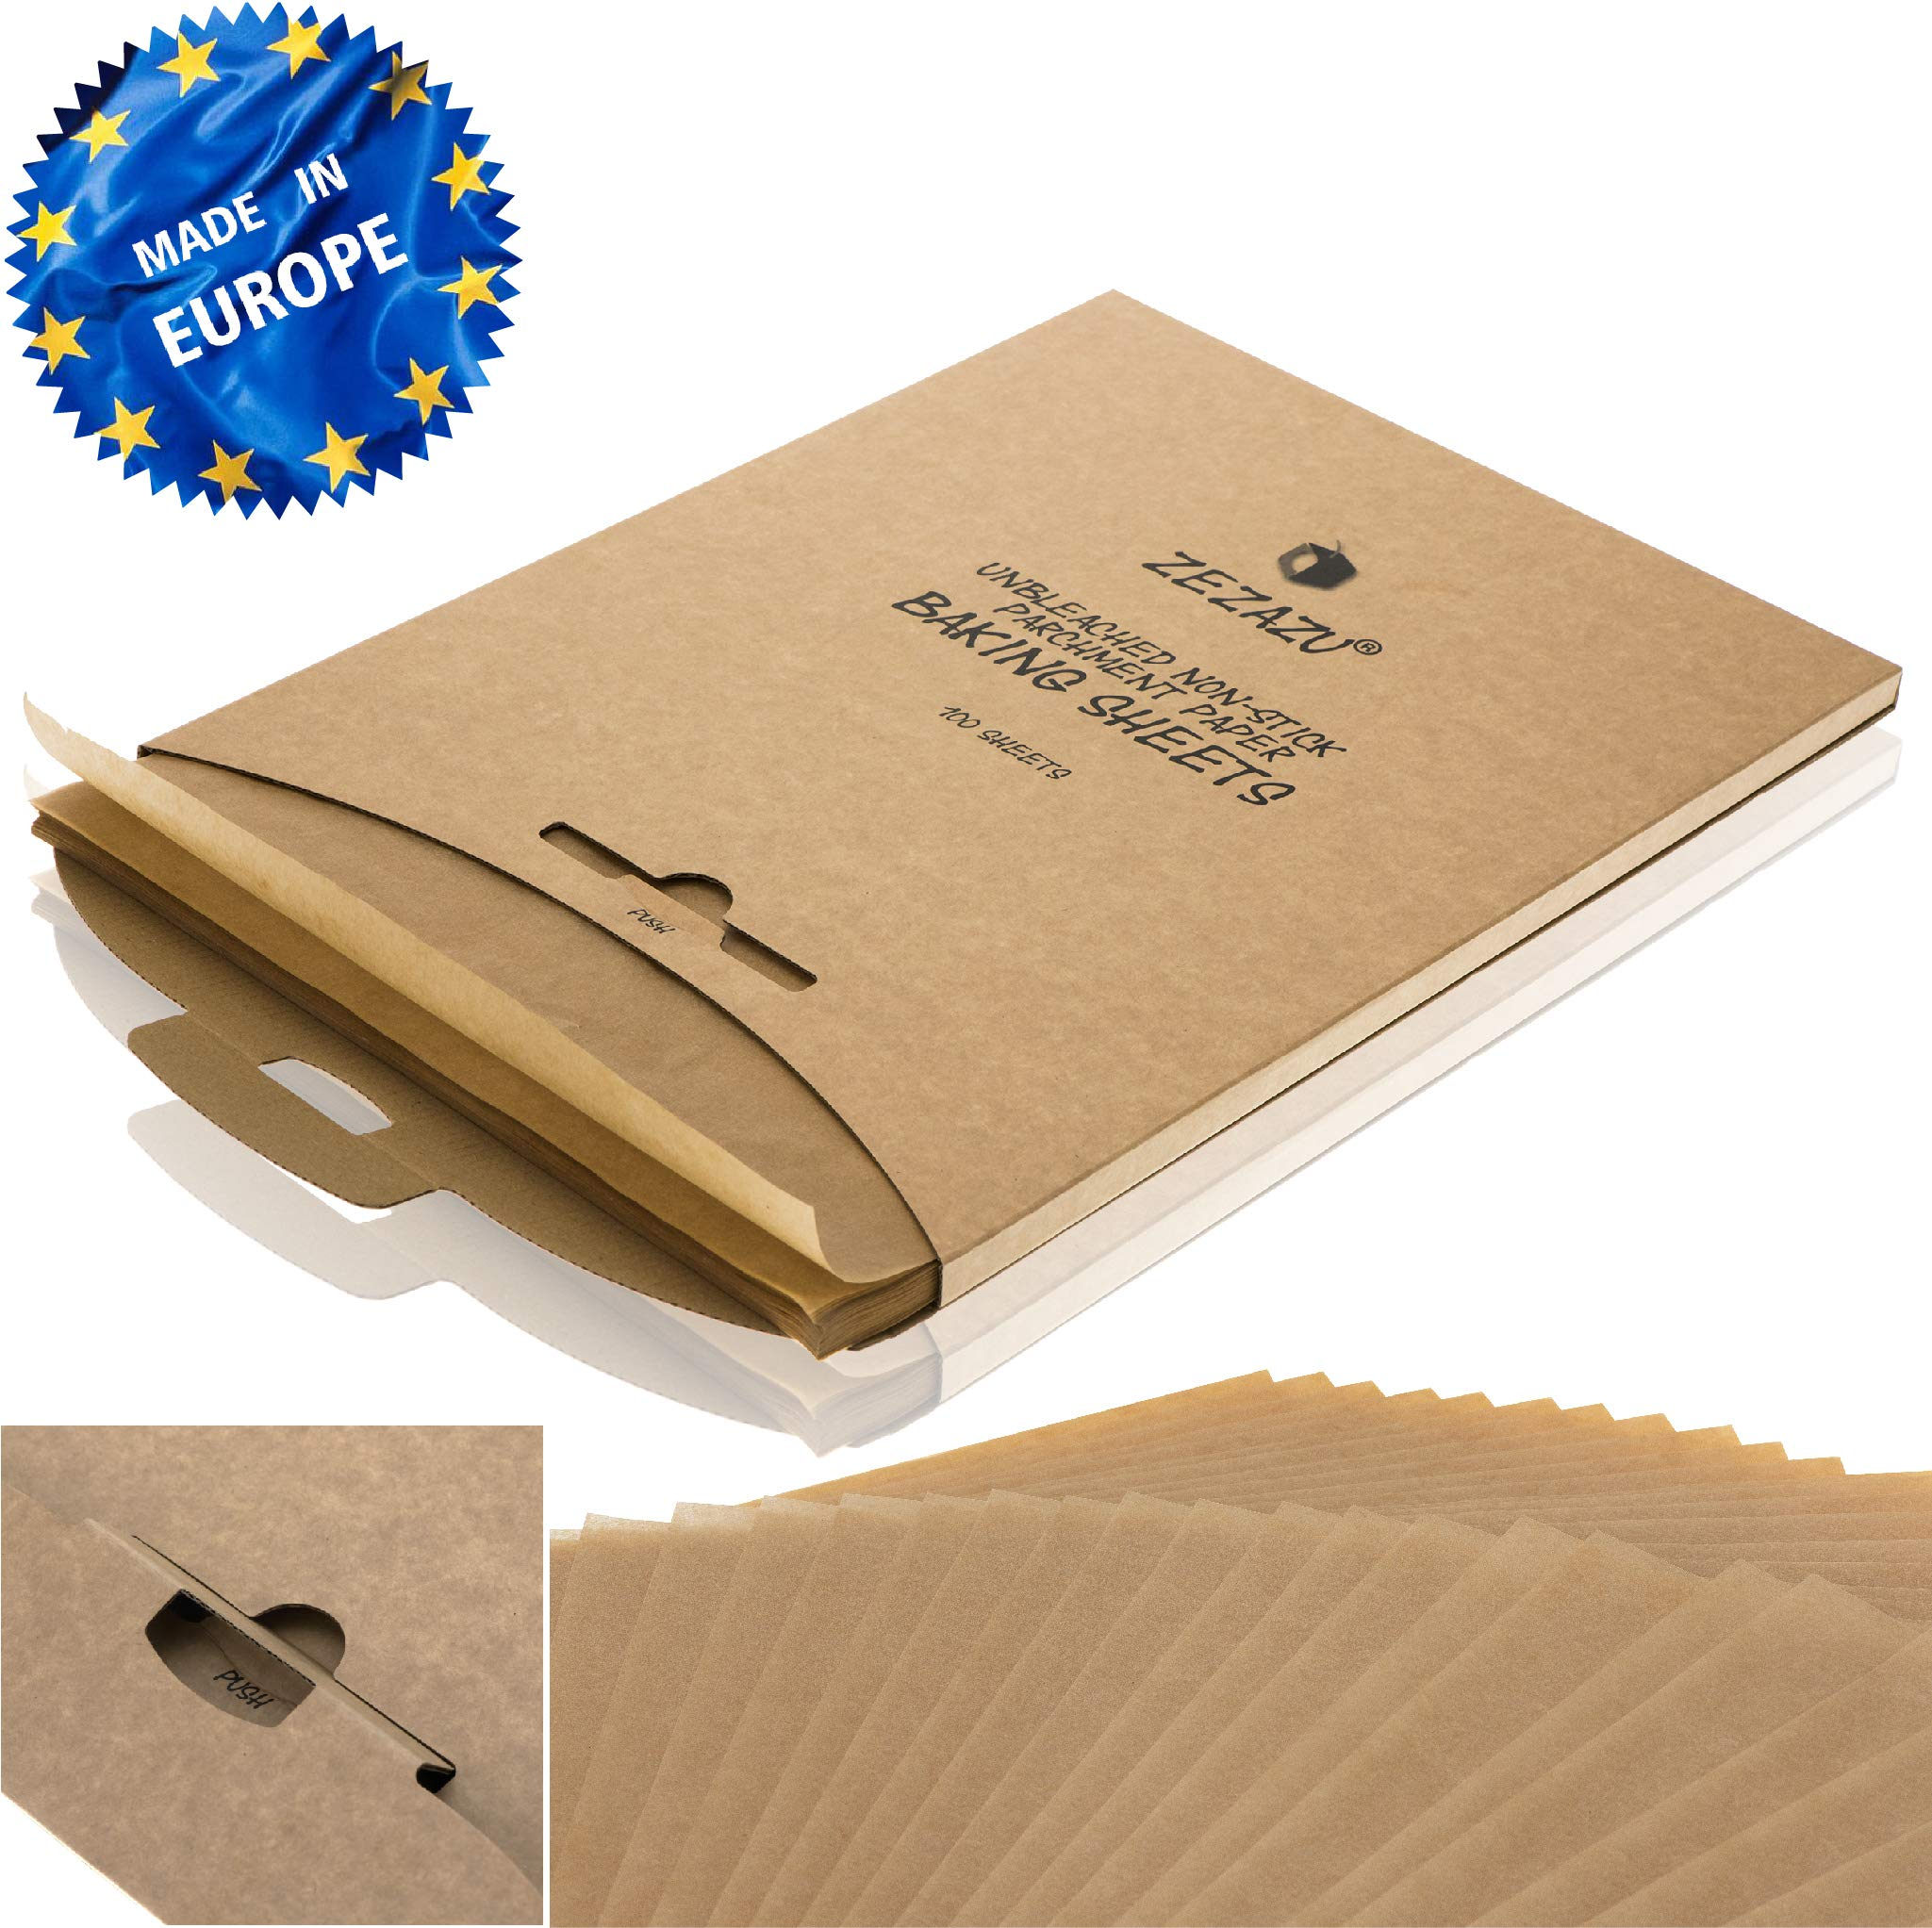 100 X Non Stick Greaseproof Parchment Paper Cake Tin Liners 12 x 16 Inches